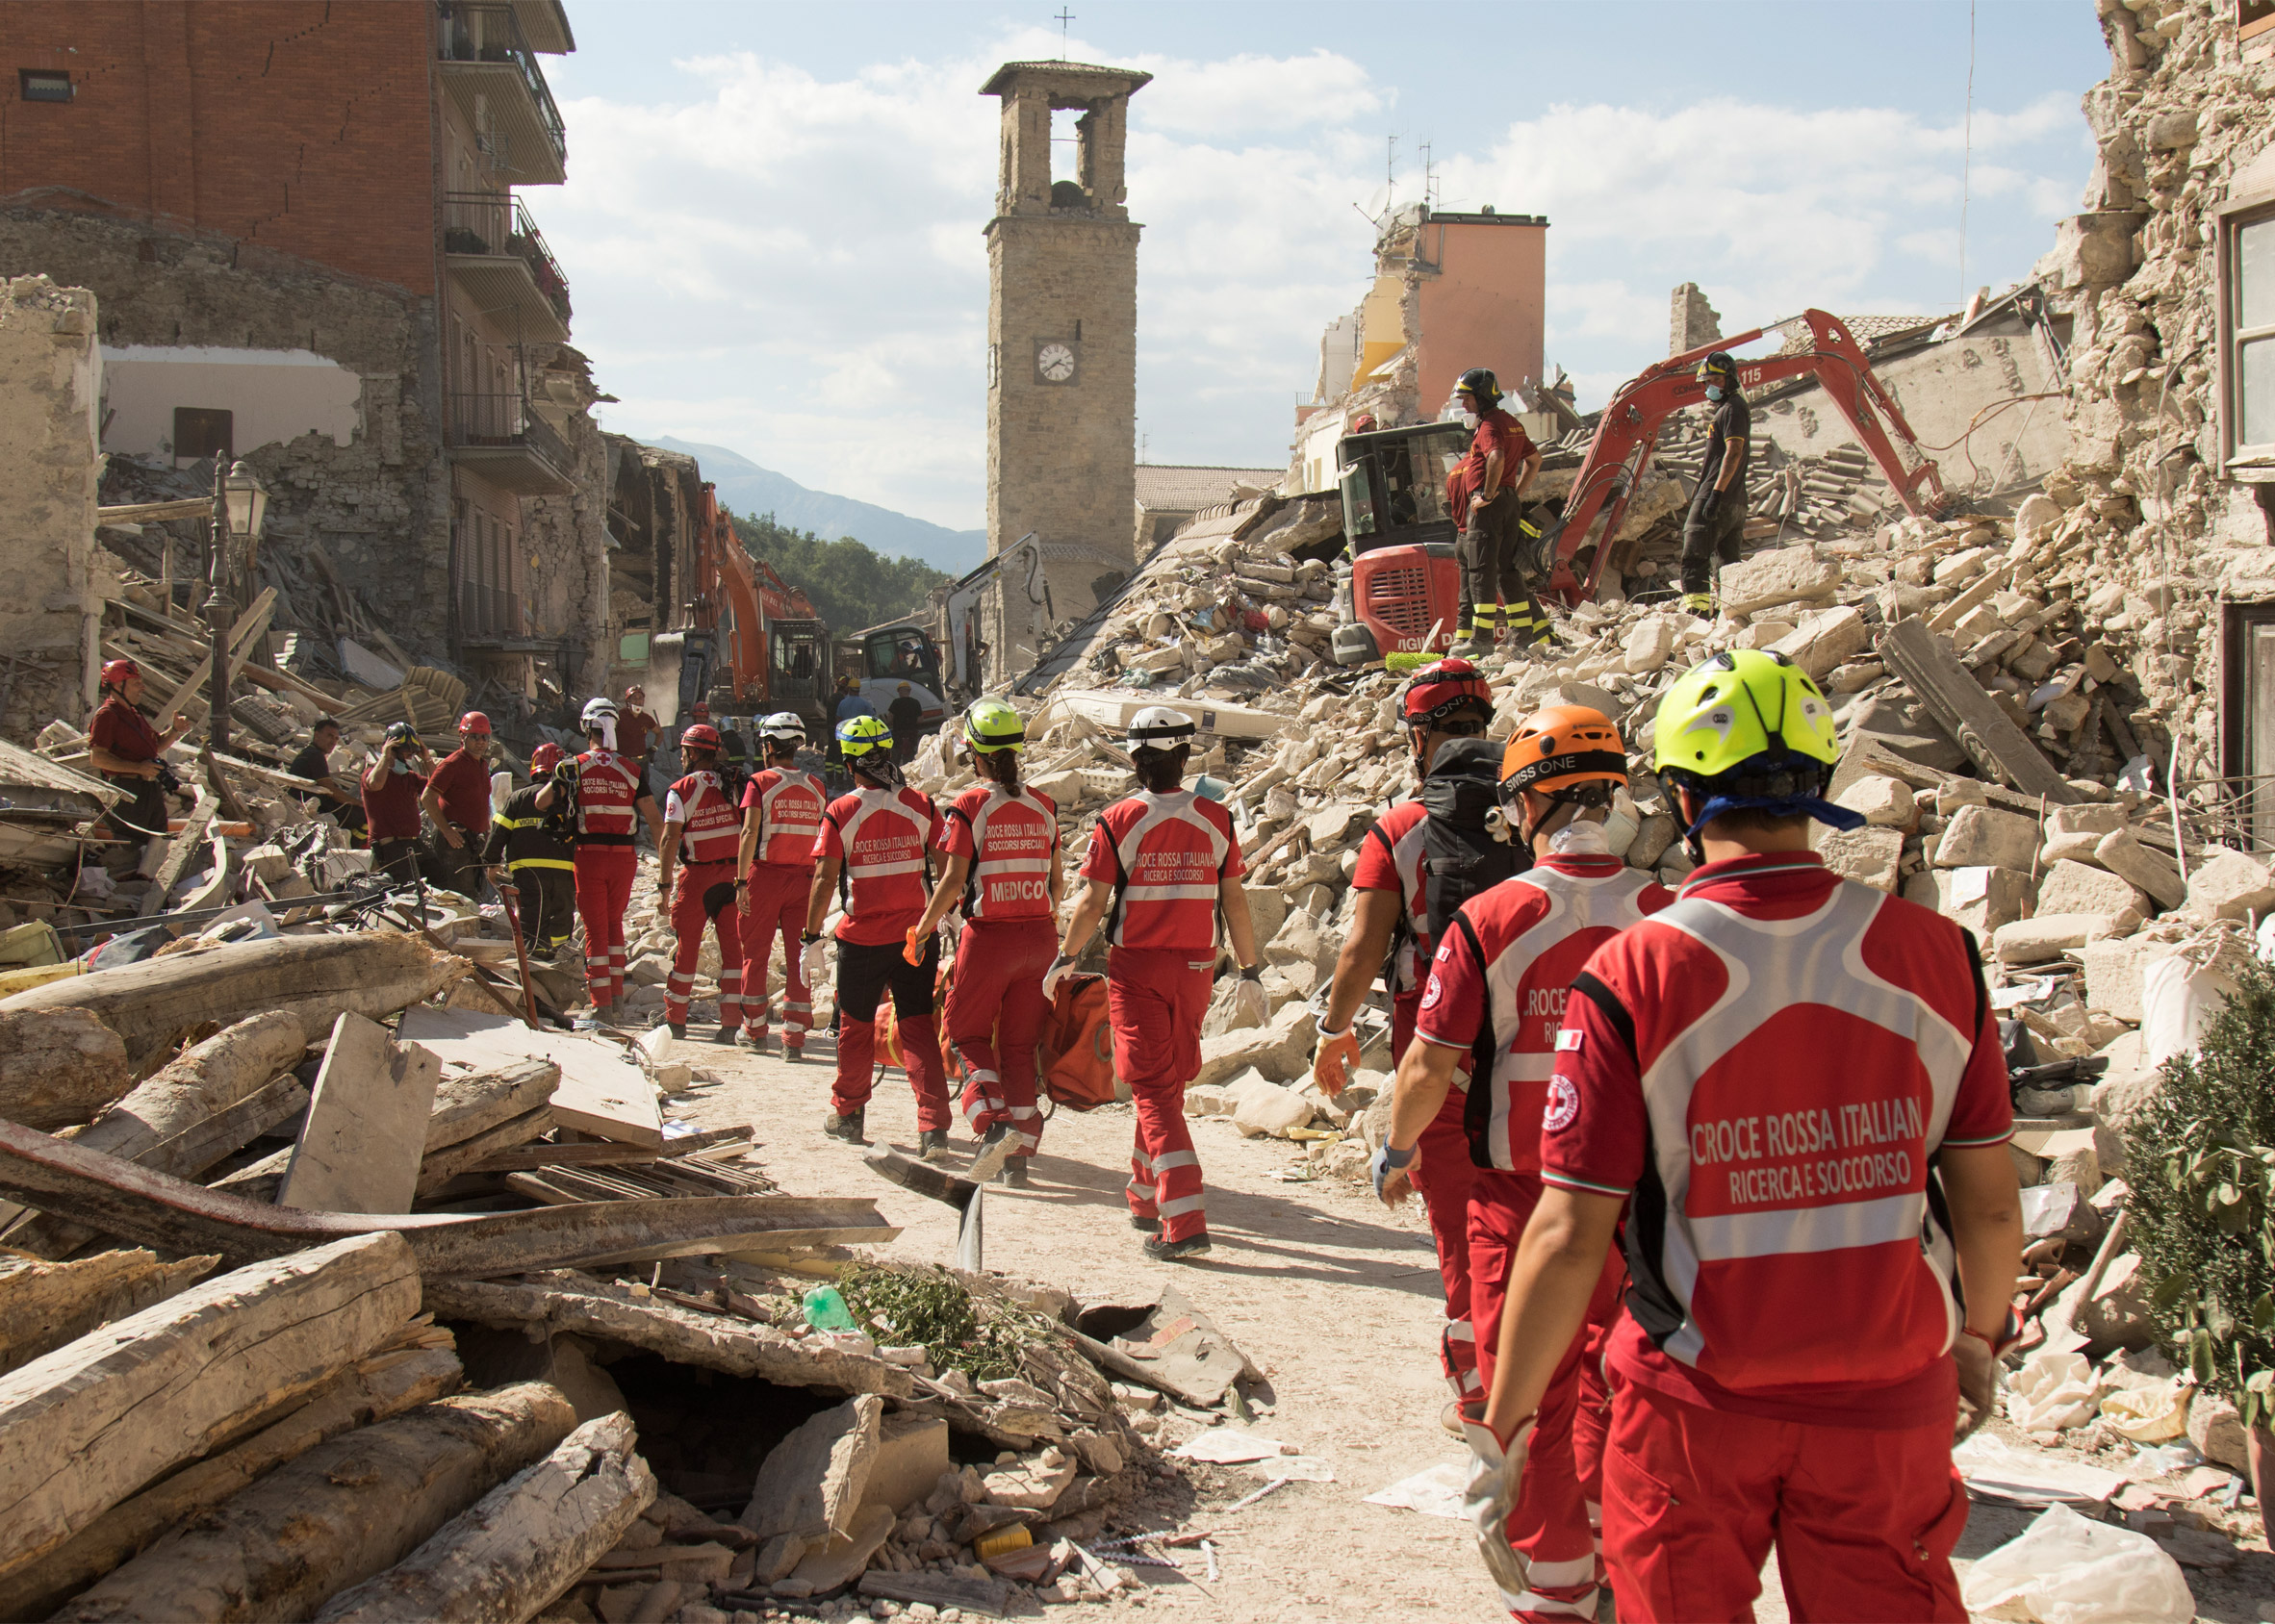 Merkel greets Italy quake rescue teams, dog